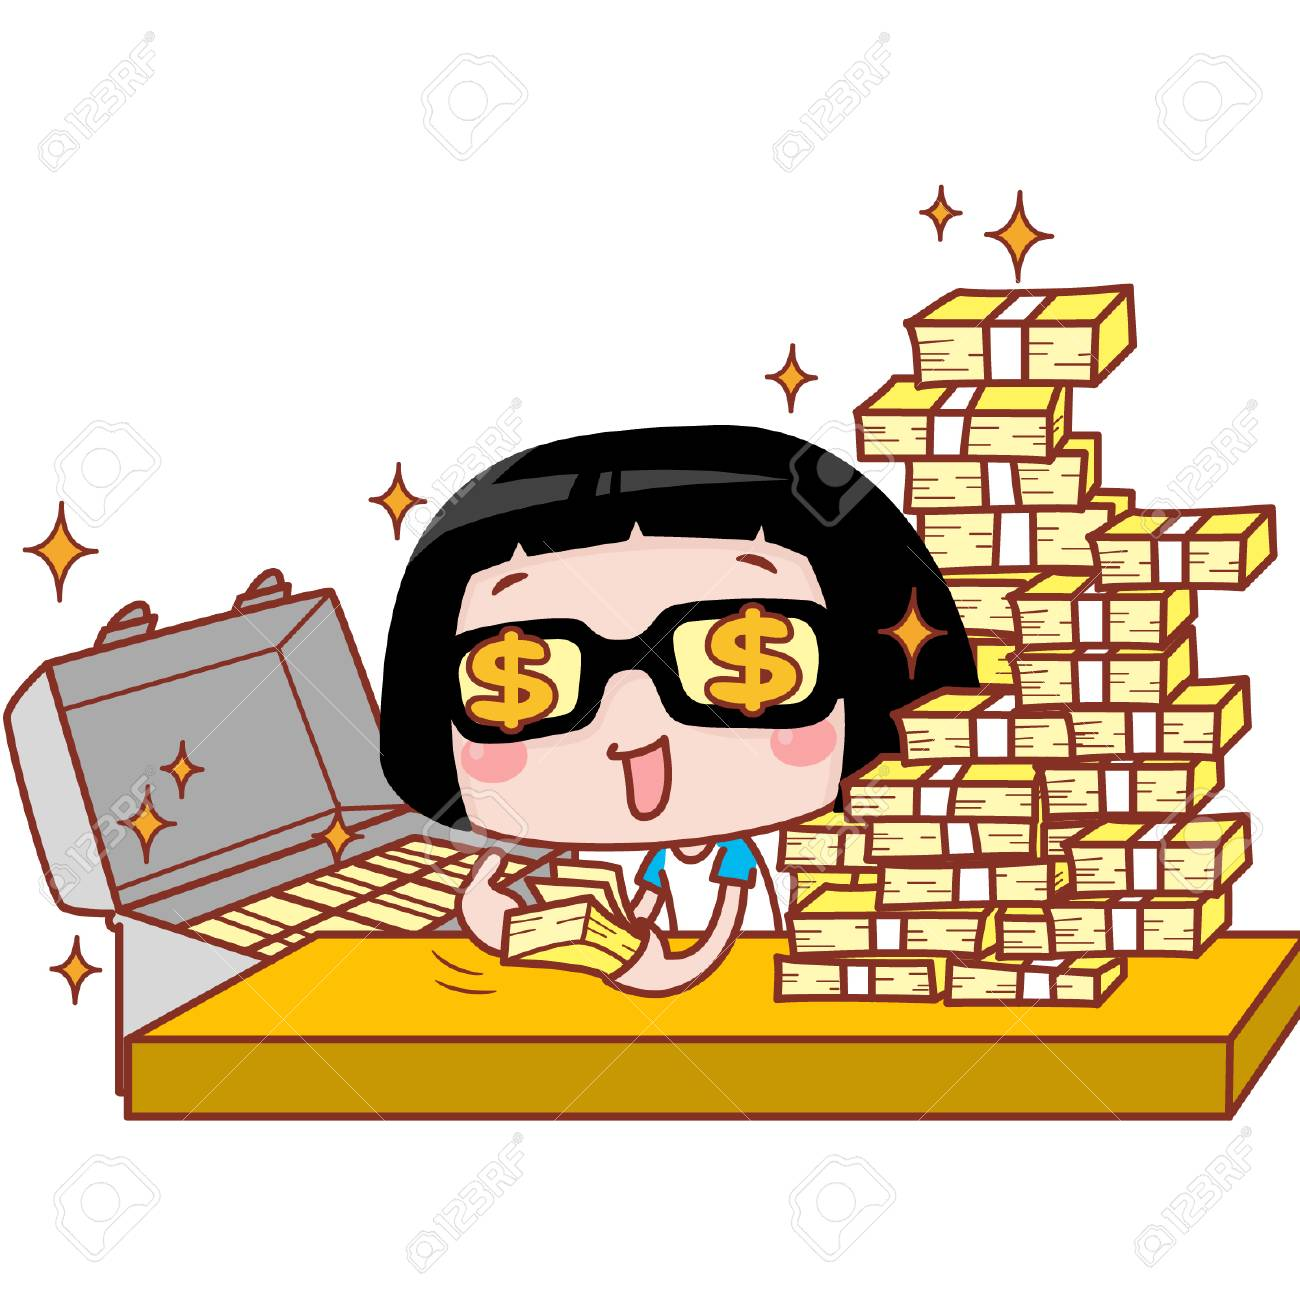 Cute cartoon girl counting money.